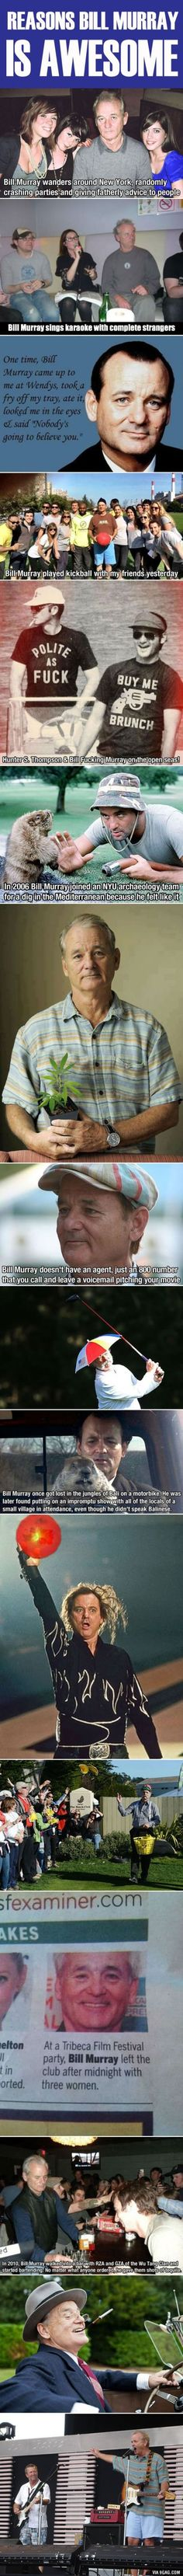 "Bill Murray is the real ""Most Interesting Man In The World."" I totally agree with this. Love him!"